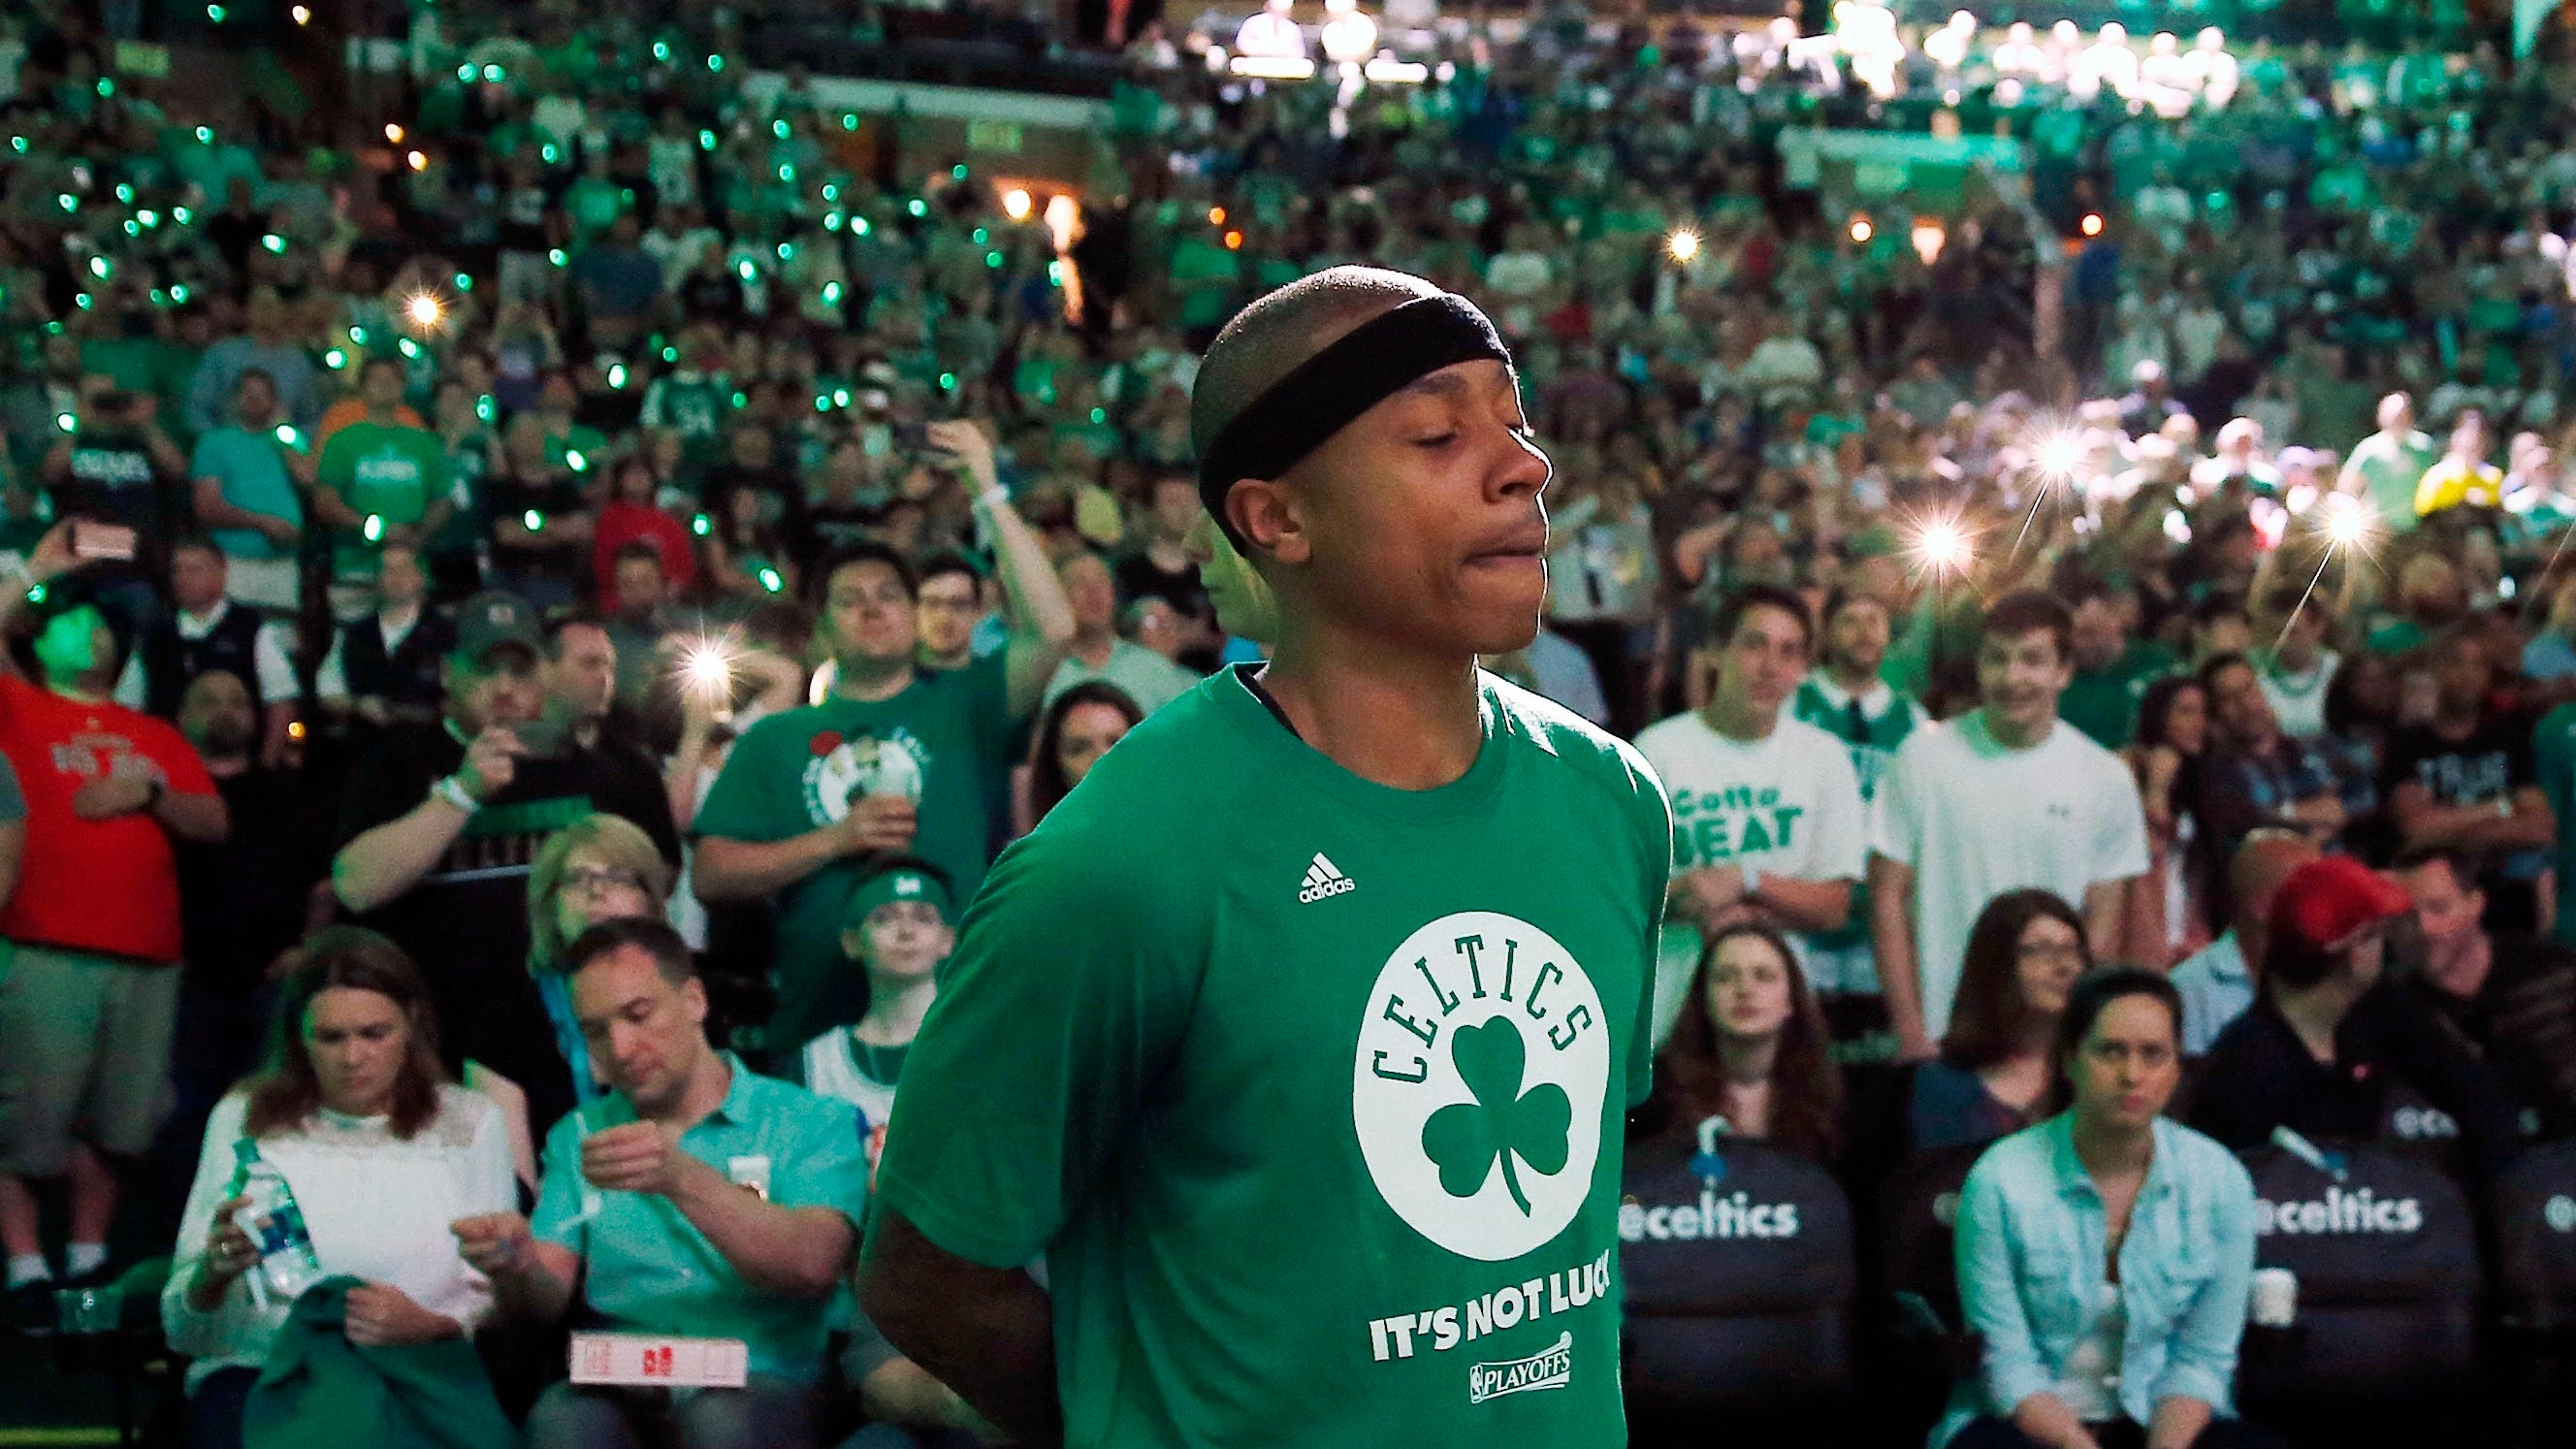 Day after sister's death, Isaiah Thomas plays for Celtics